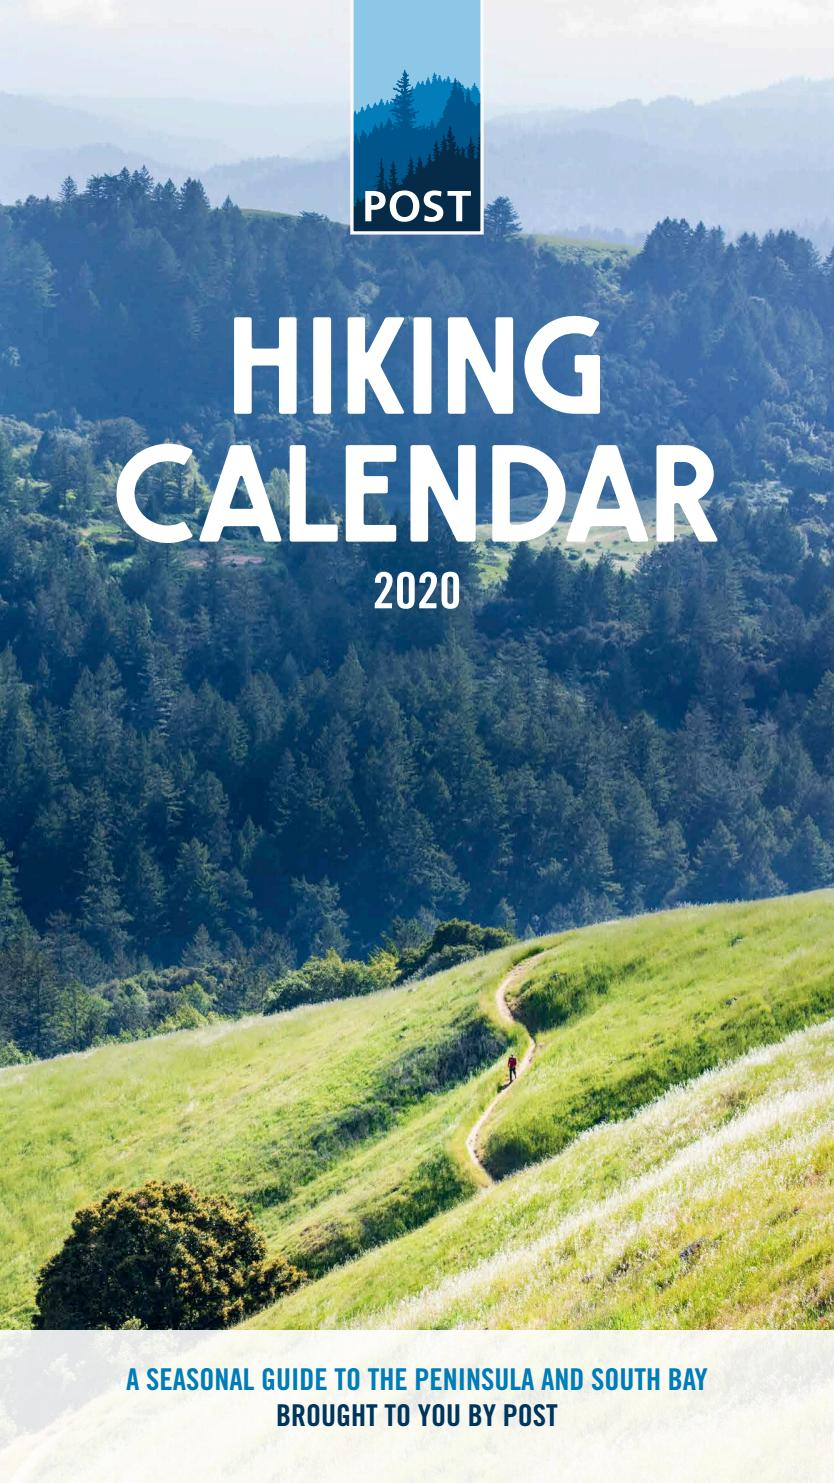 Post's Hiking Calendar - 2020Peninsula Open Space Trust Intended For Canyon Del Oro Calendar